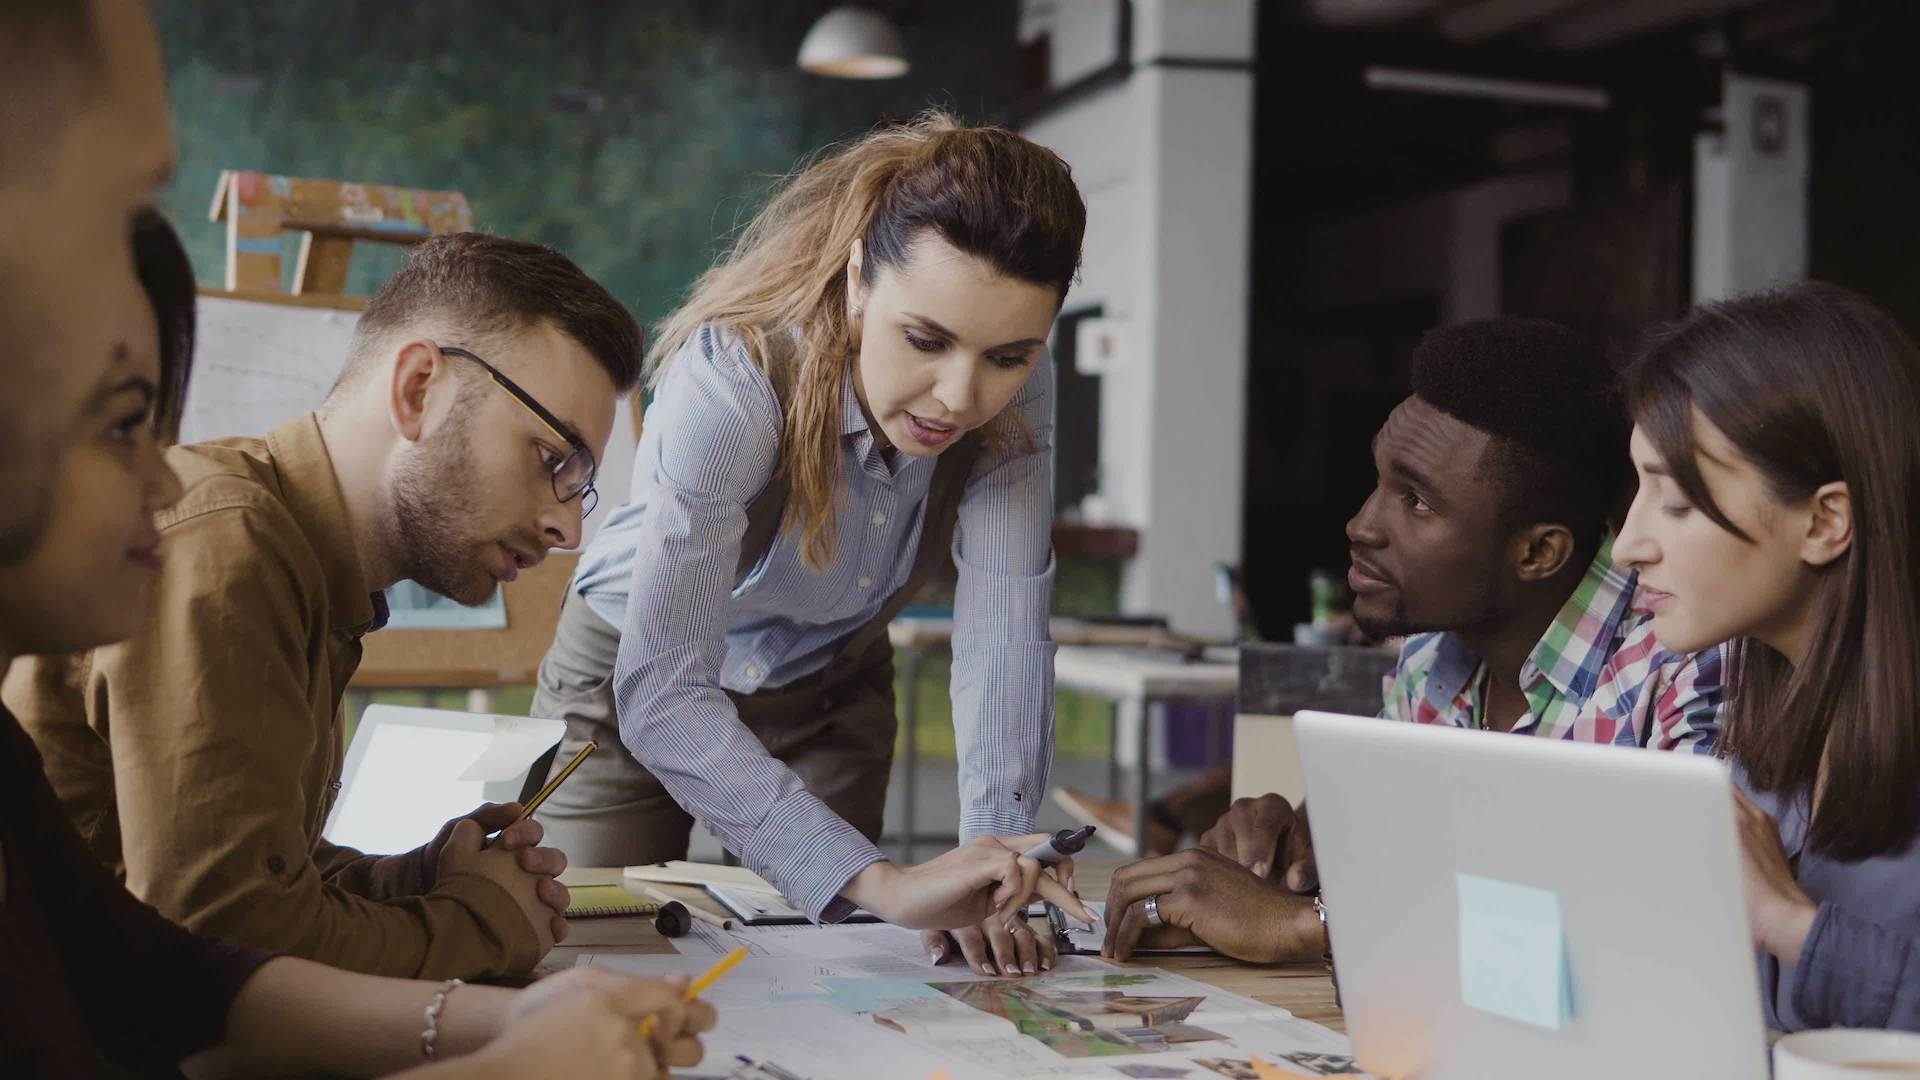 A new study published in the journal Science found that taking responsibility on behalf of others is the number one leadership trait.